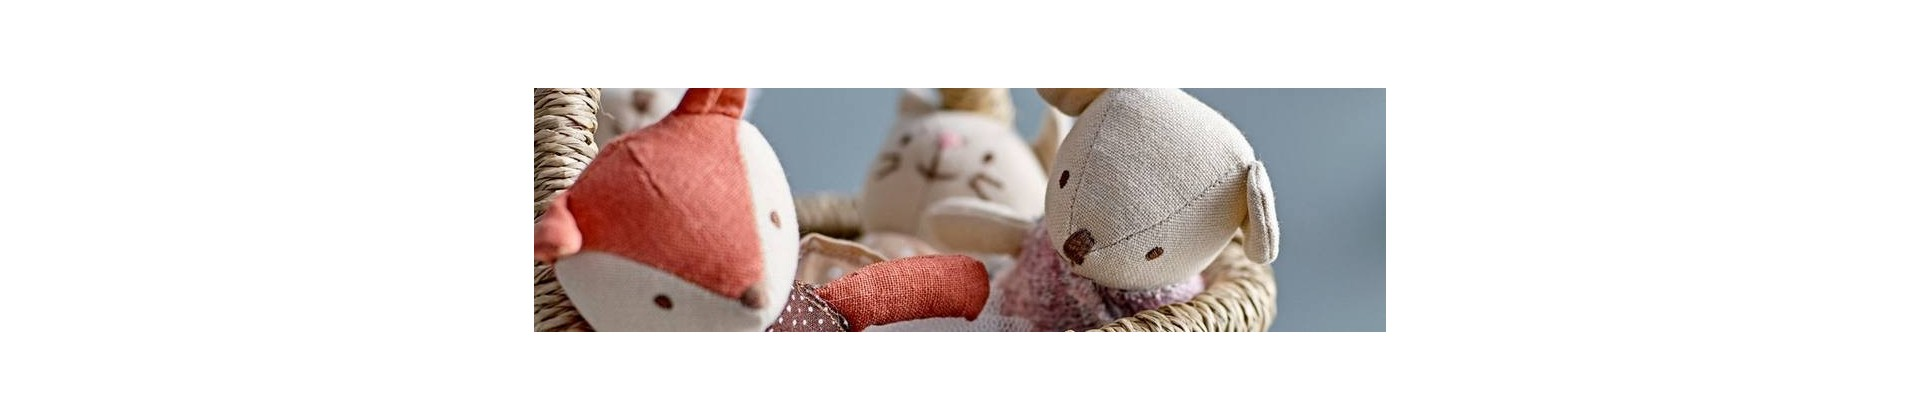 Stuffed Animal and Plush Toys - Baby Toys and Games